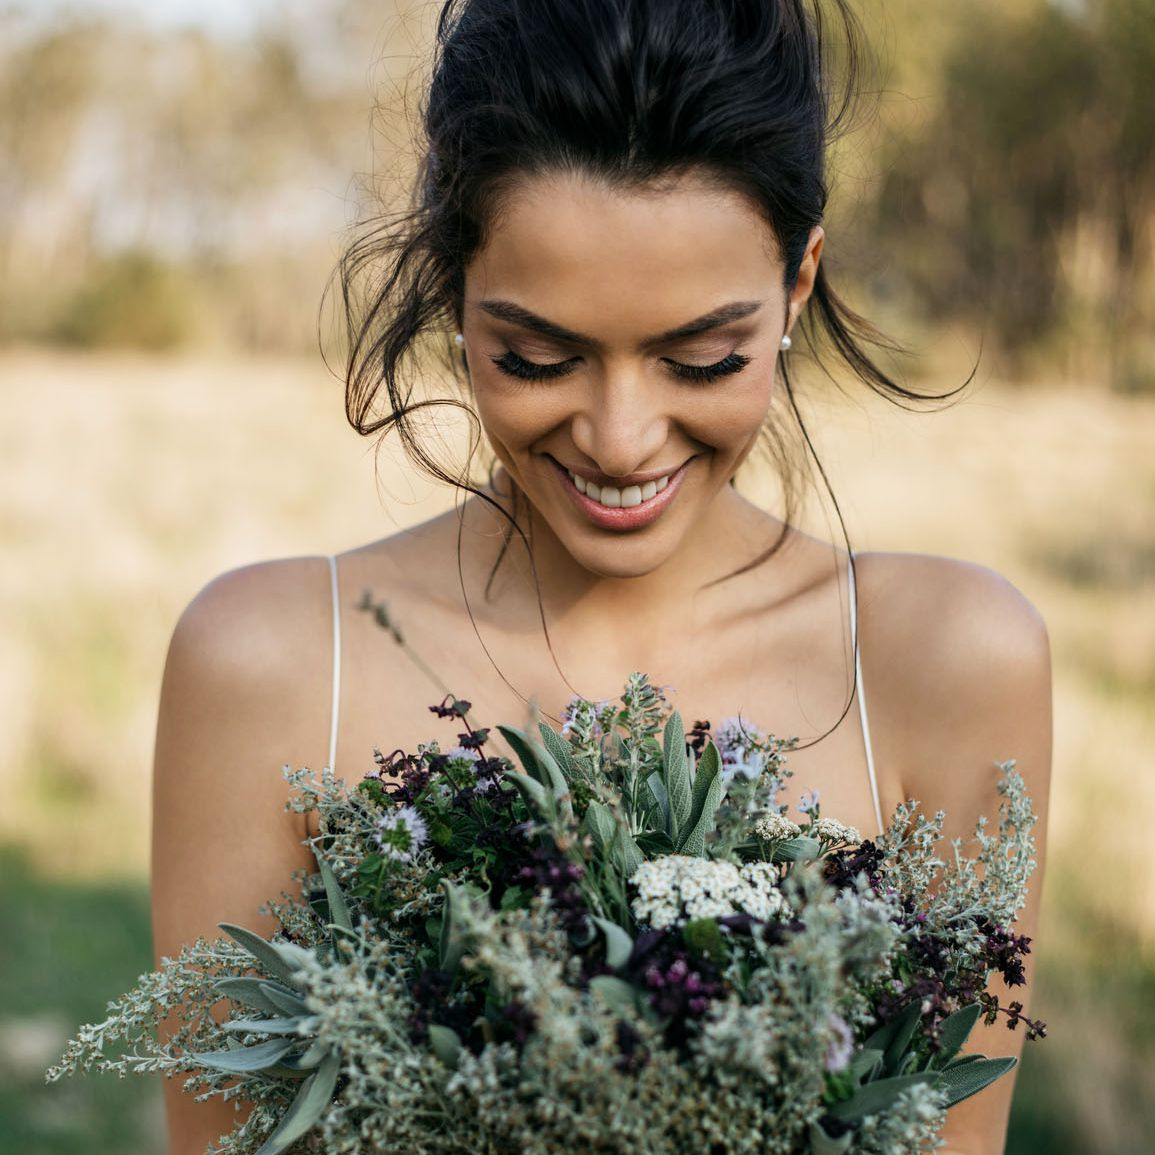 So You're Getting Married Next Year: Here's How to Ensure Your Skin Looks Amazing